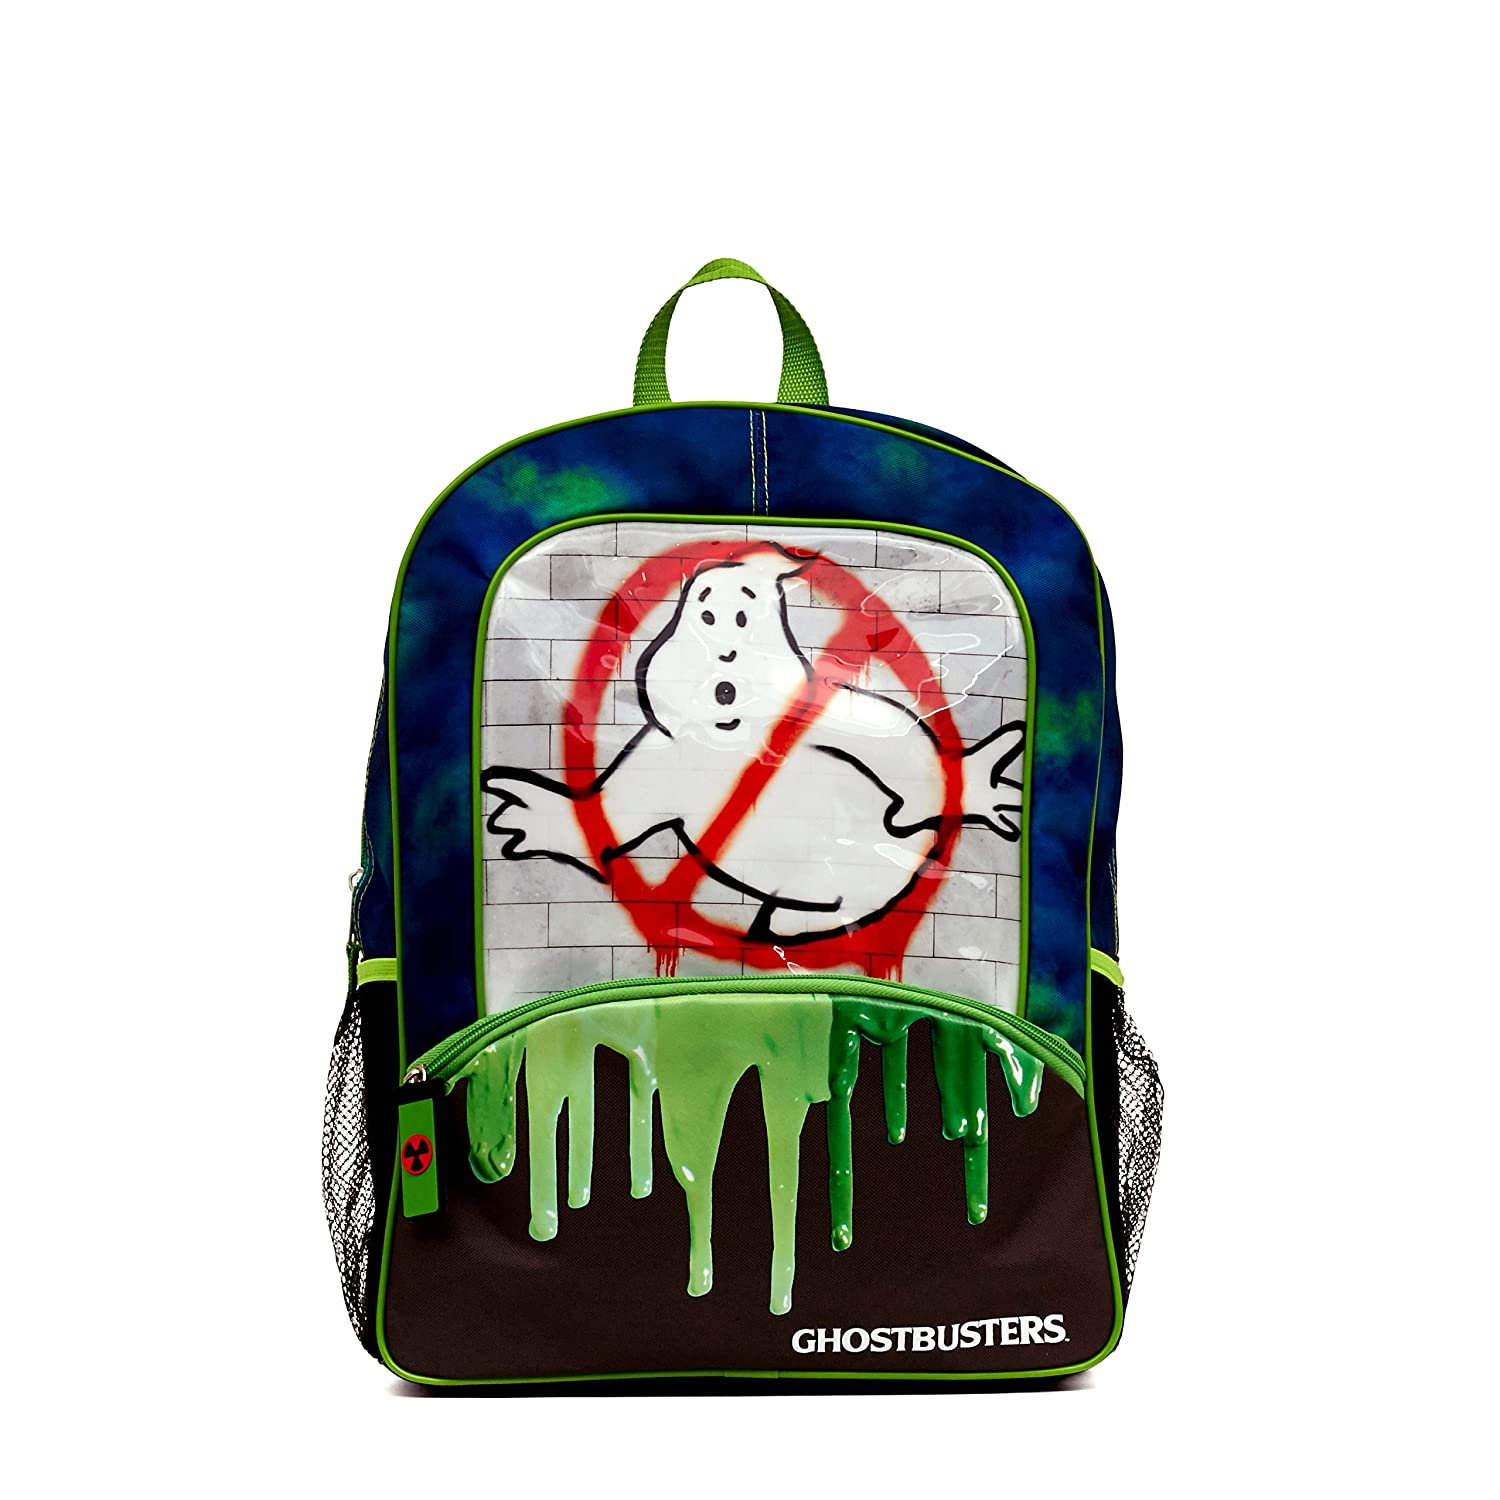 Ghostbusters No Ghost Slimer 16 Inch Backpack 6794323